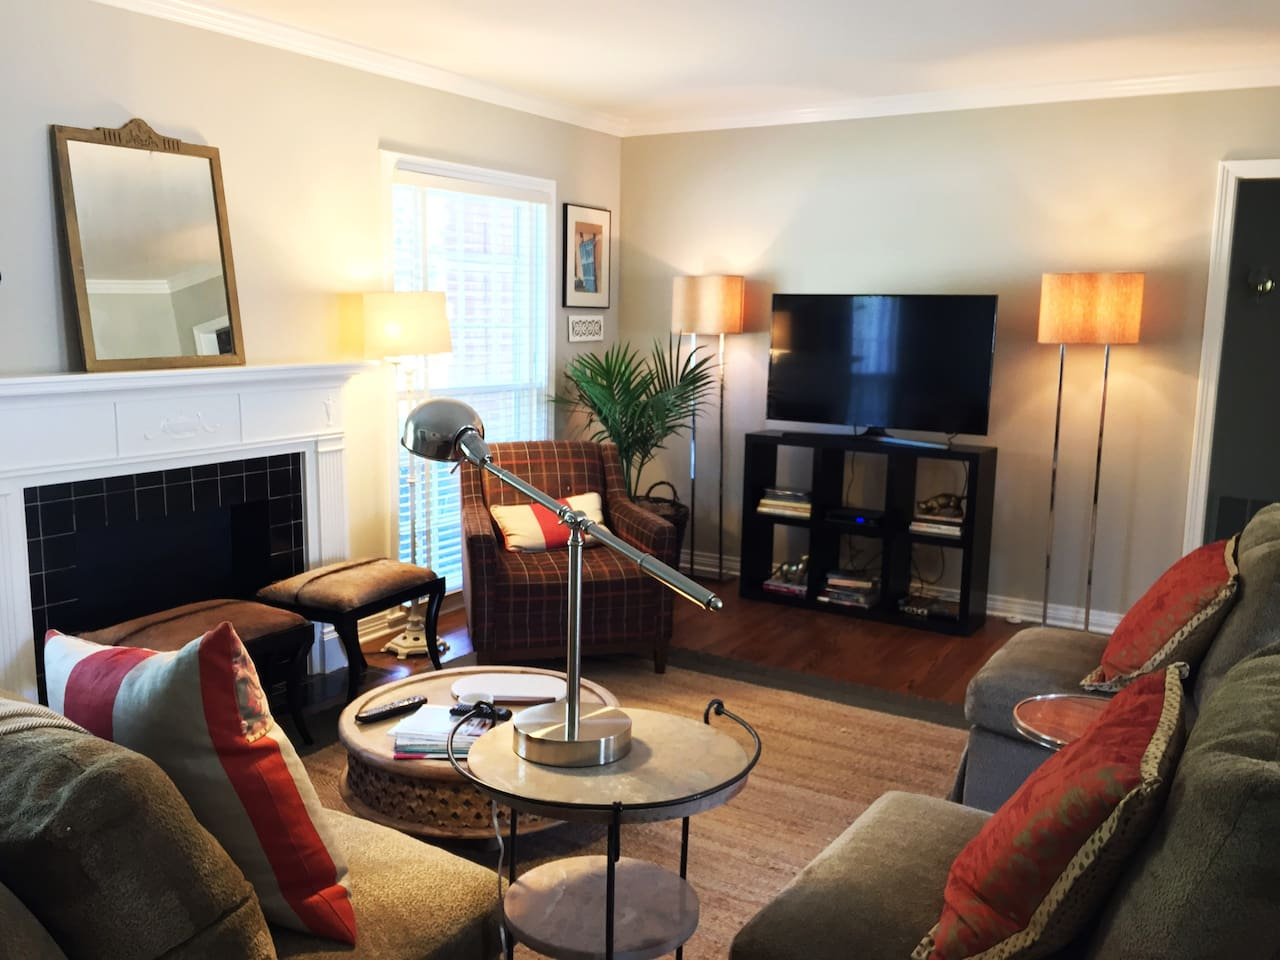 Relax feel at home! This retreat-like flat for one or two quiet adults or a small family.